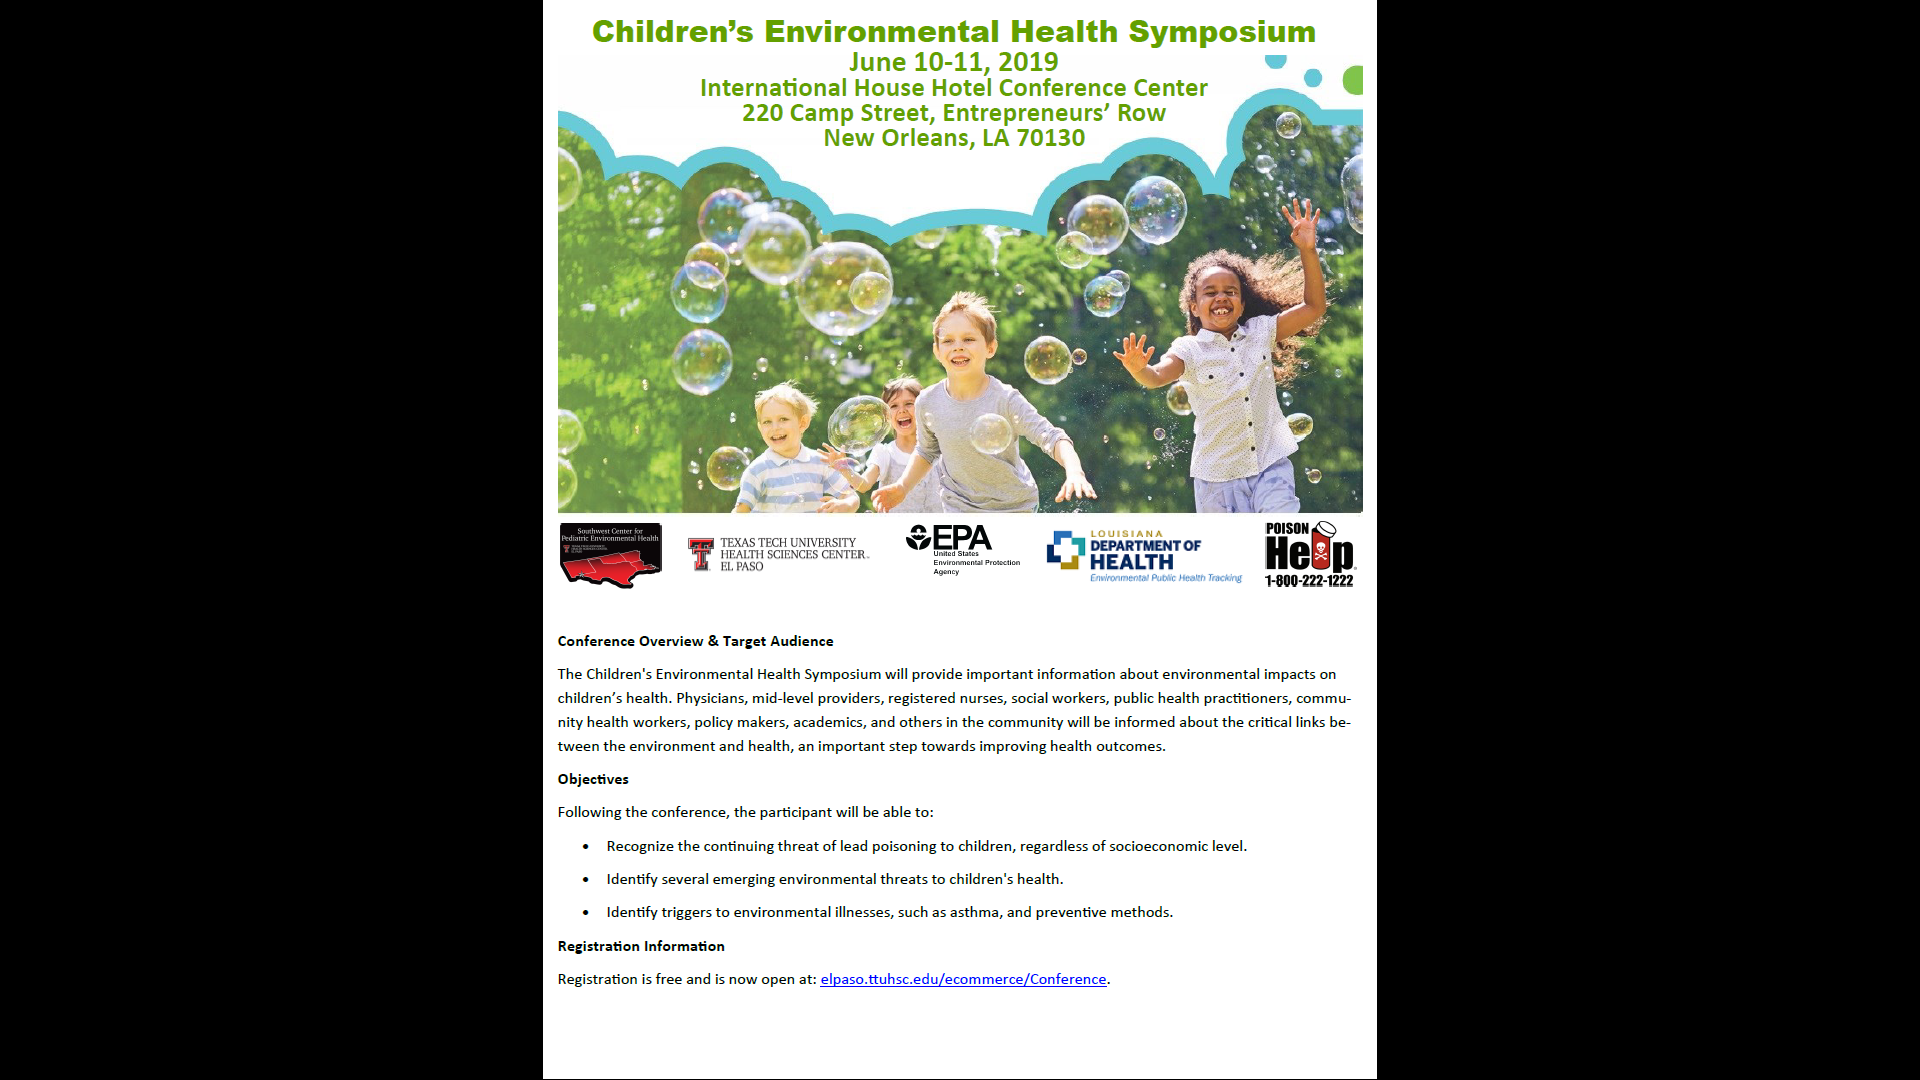 The Children's Environmental Health Symposium